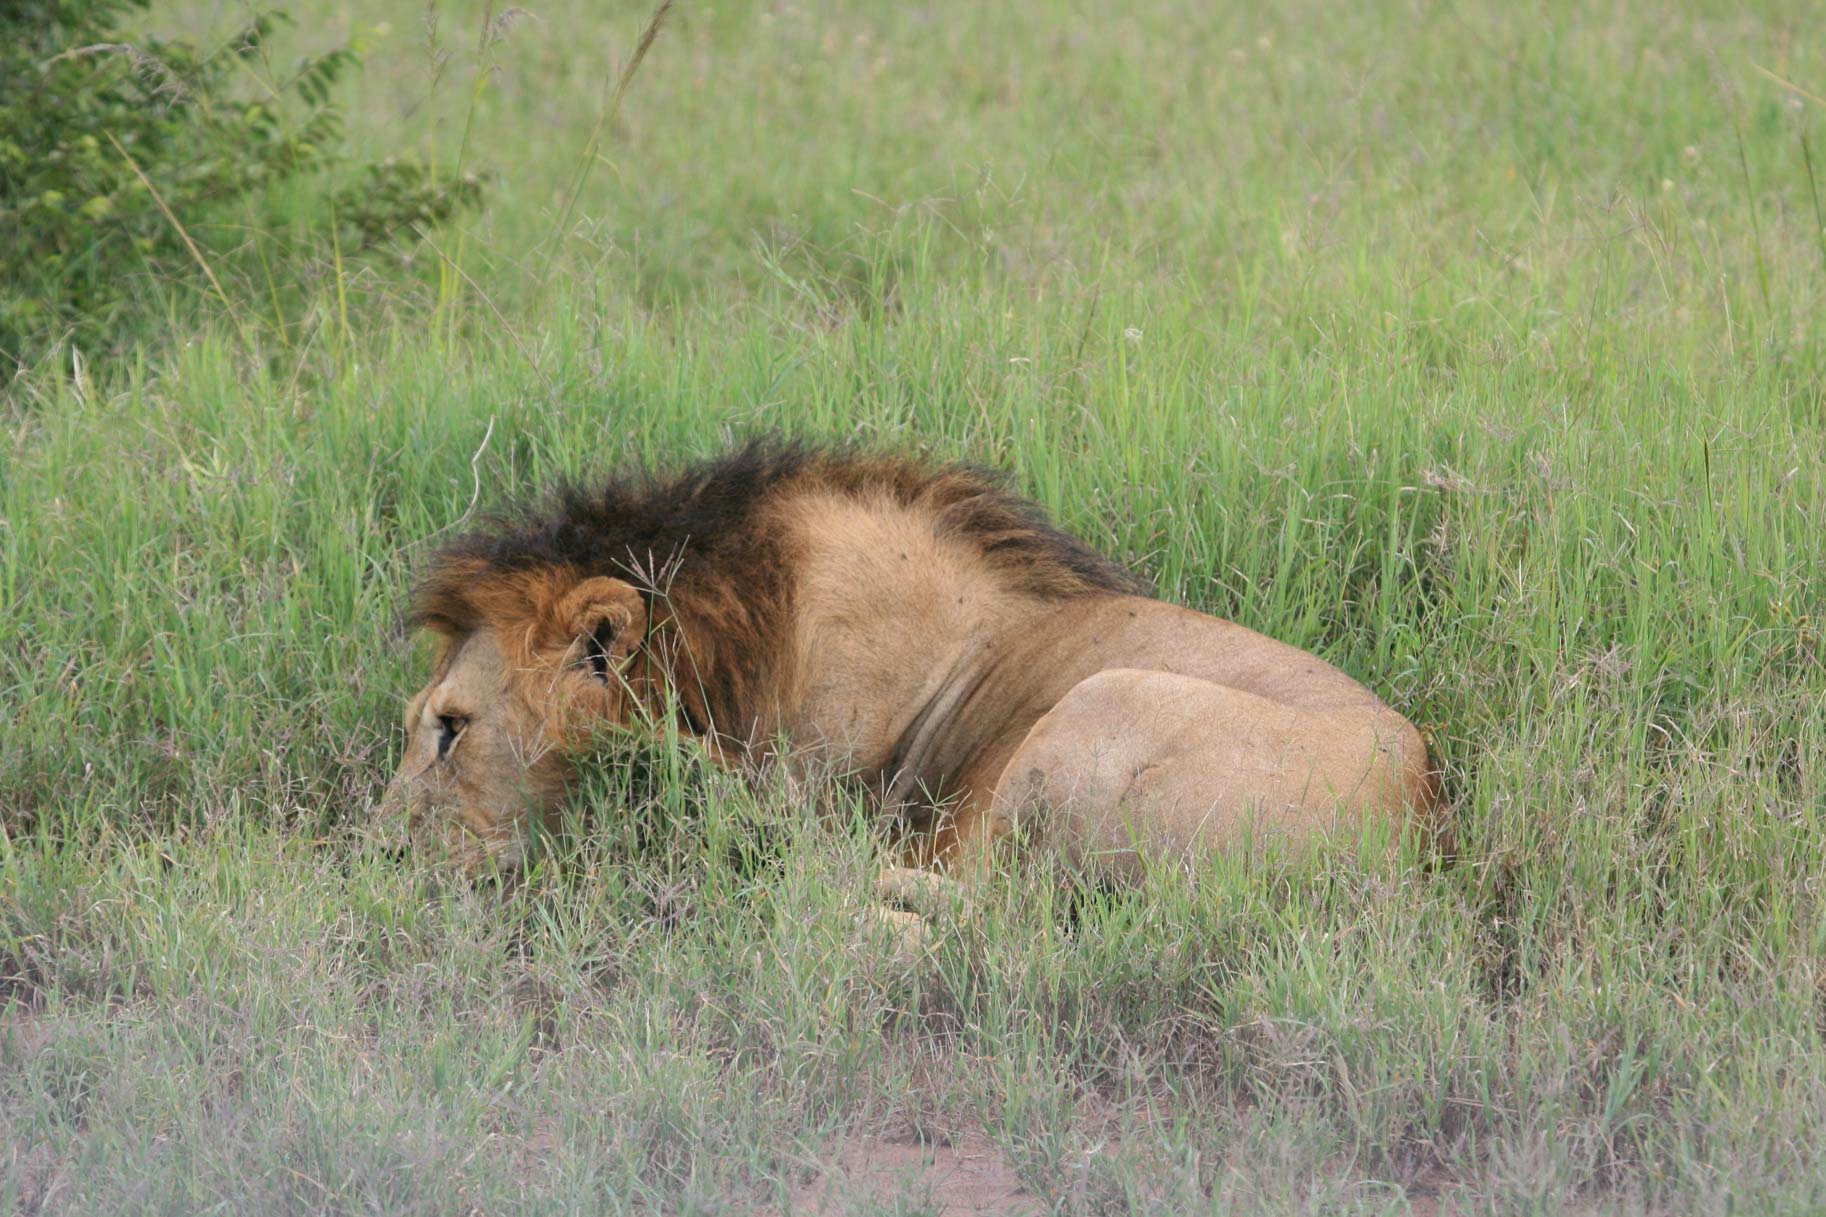 African Lions by Suzanne Vlamis